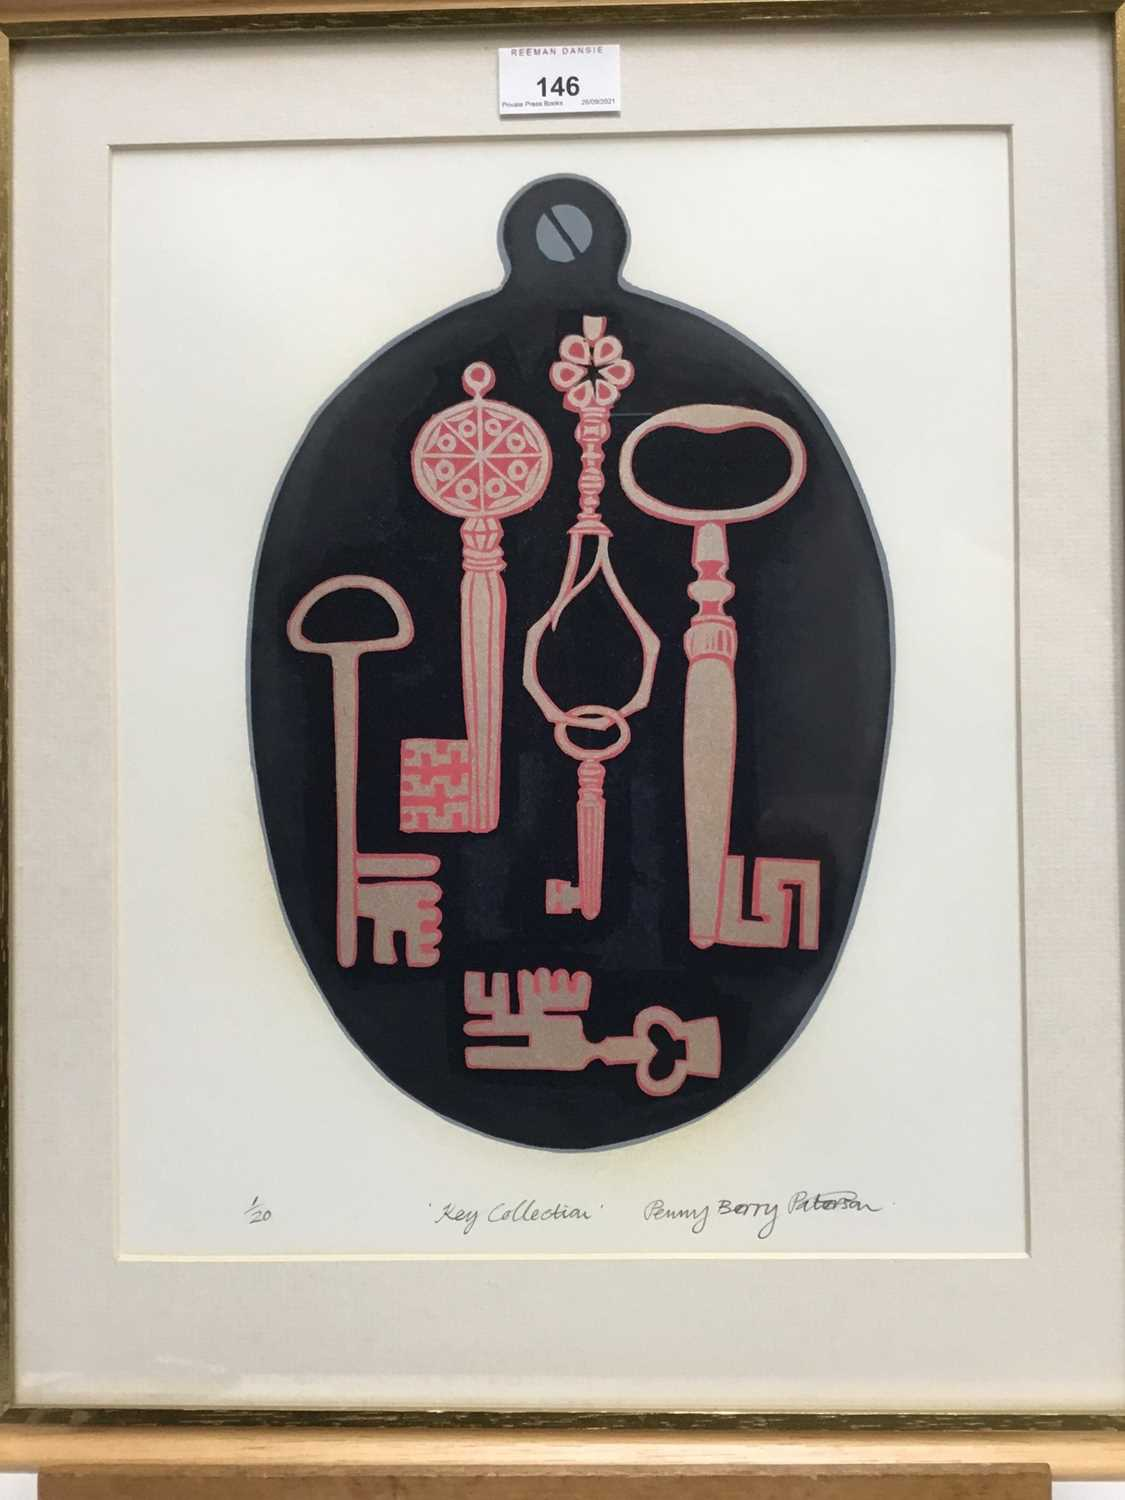 Penny Berry Paterson (1941-2021), colour linocut 'Key Collection', signed, titled numbered 1/20, ima